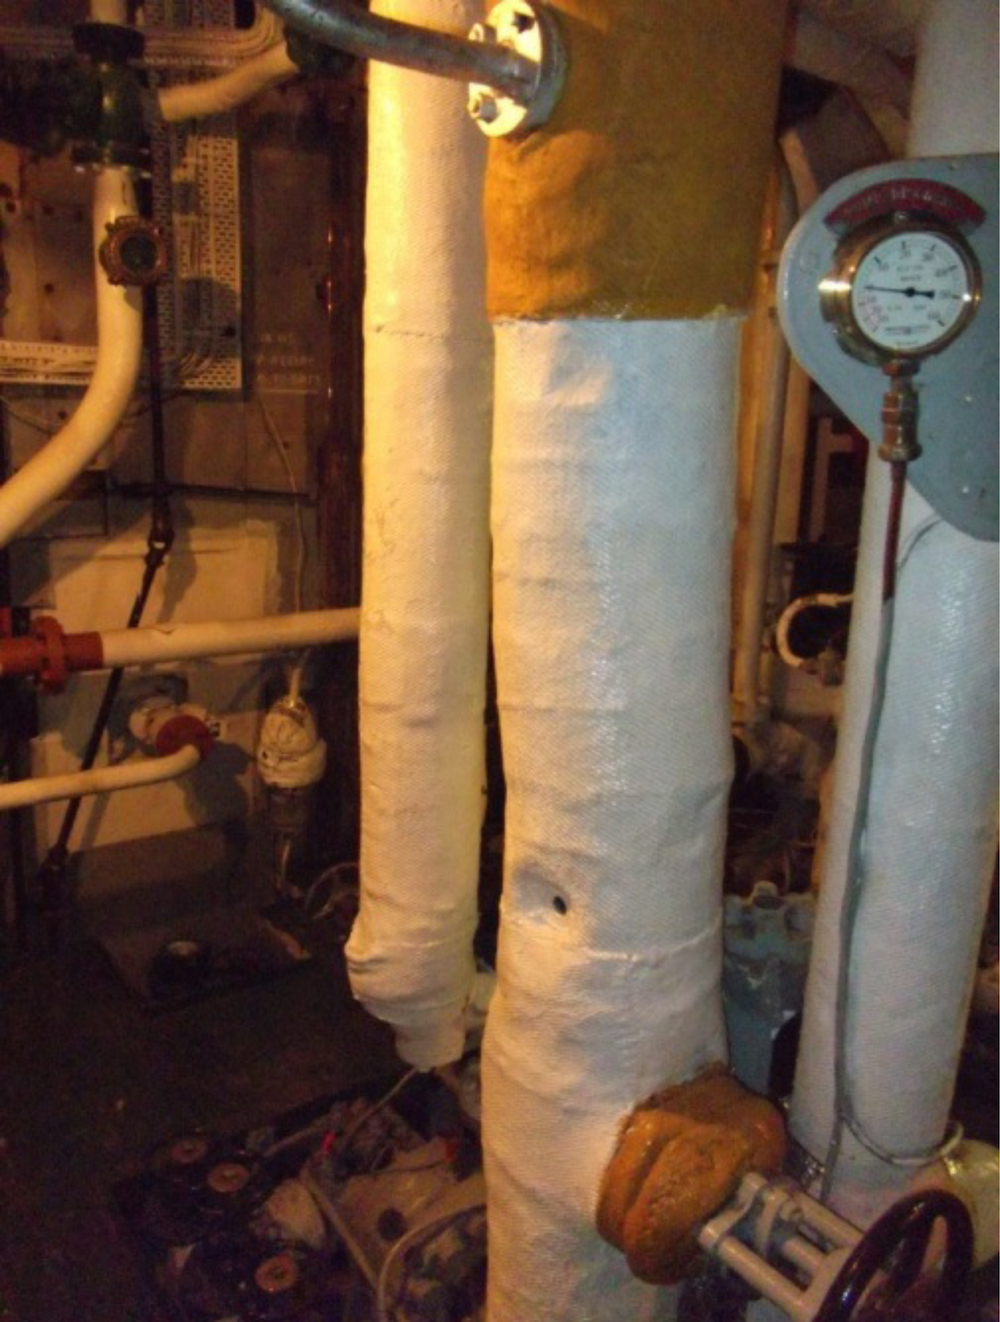 Asbestos insulation around pipework and boilers